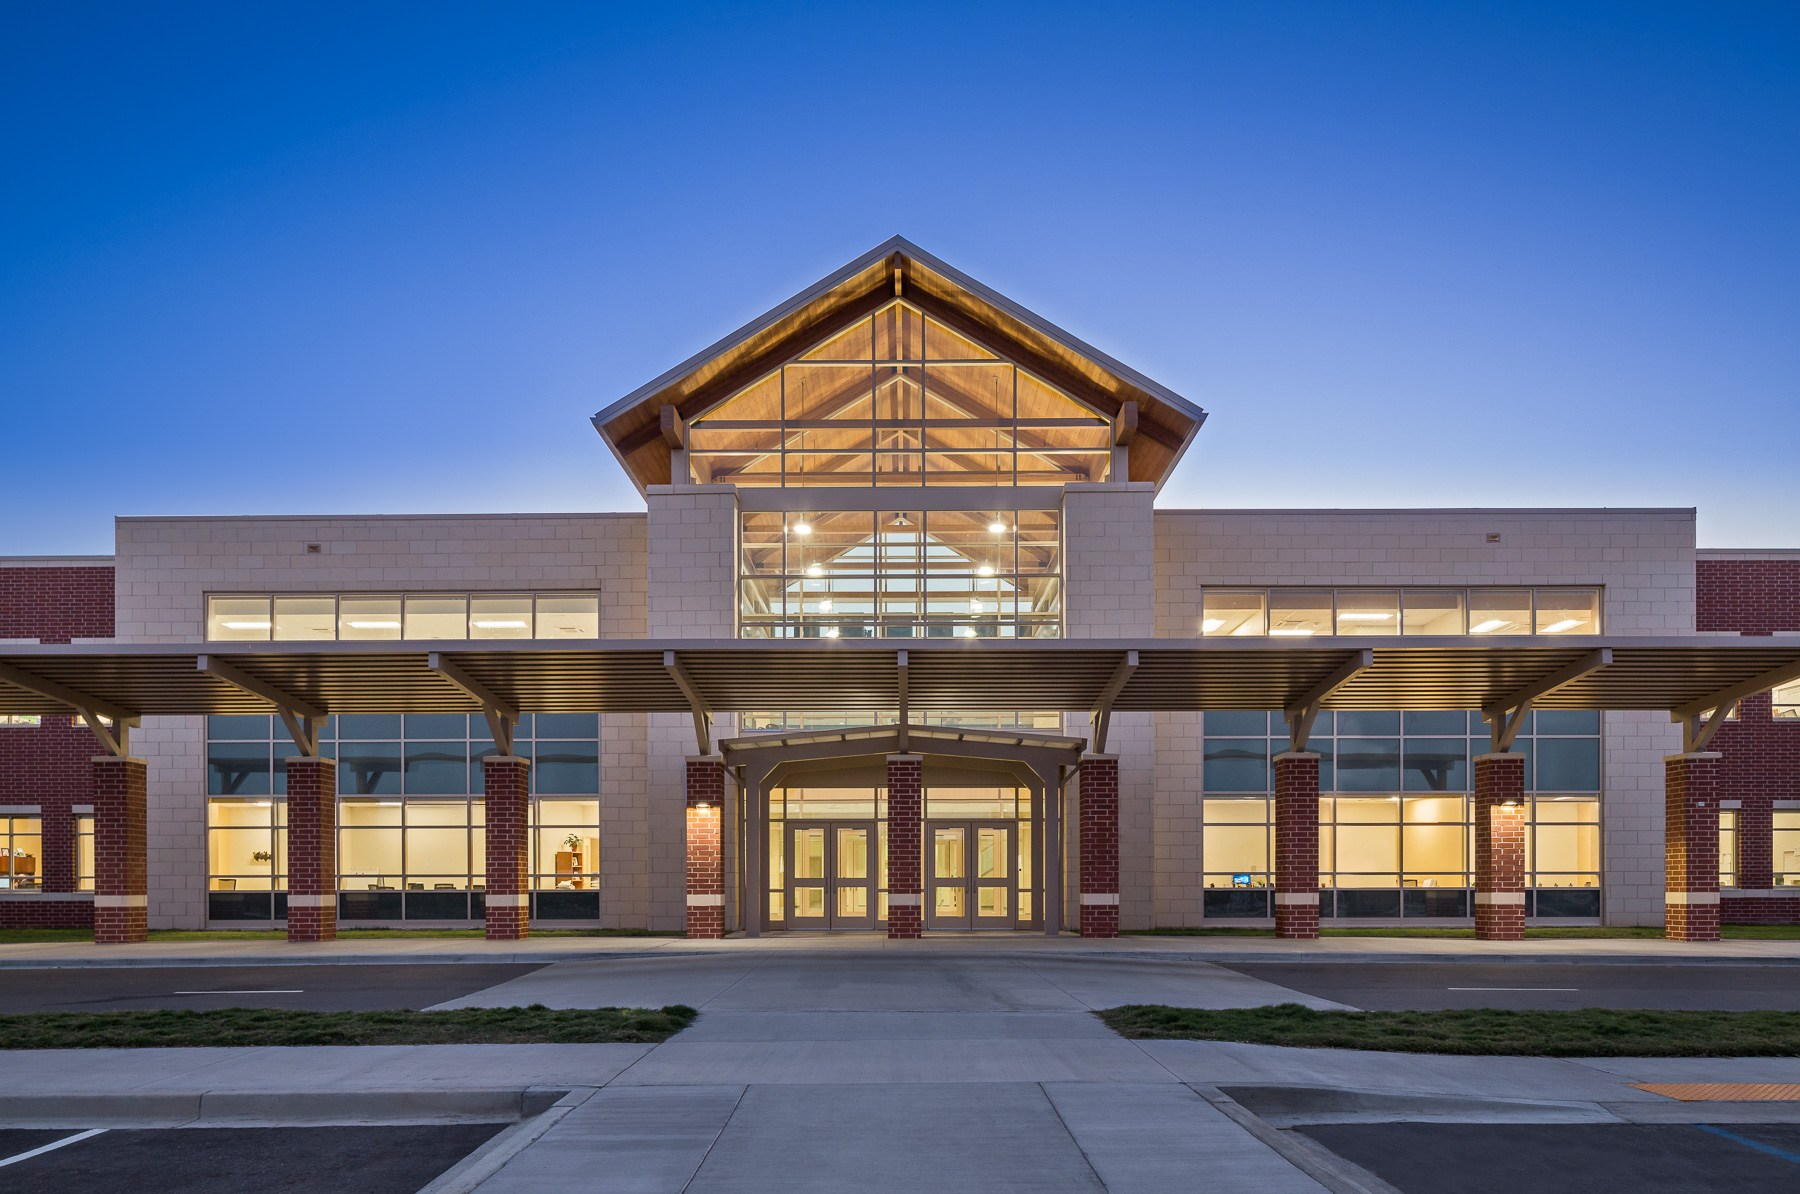 Photos of the New Cayce Elementary